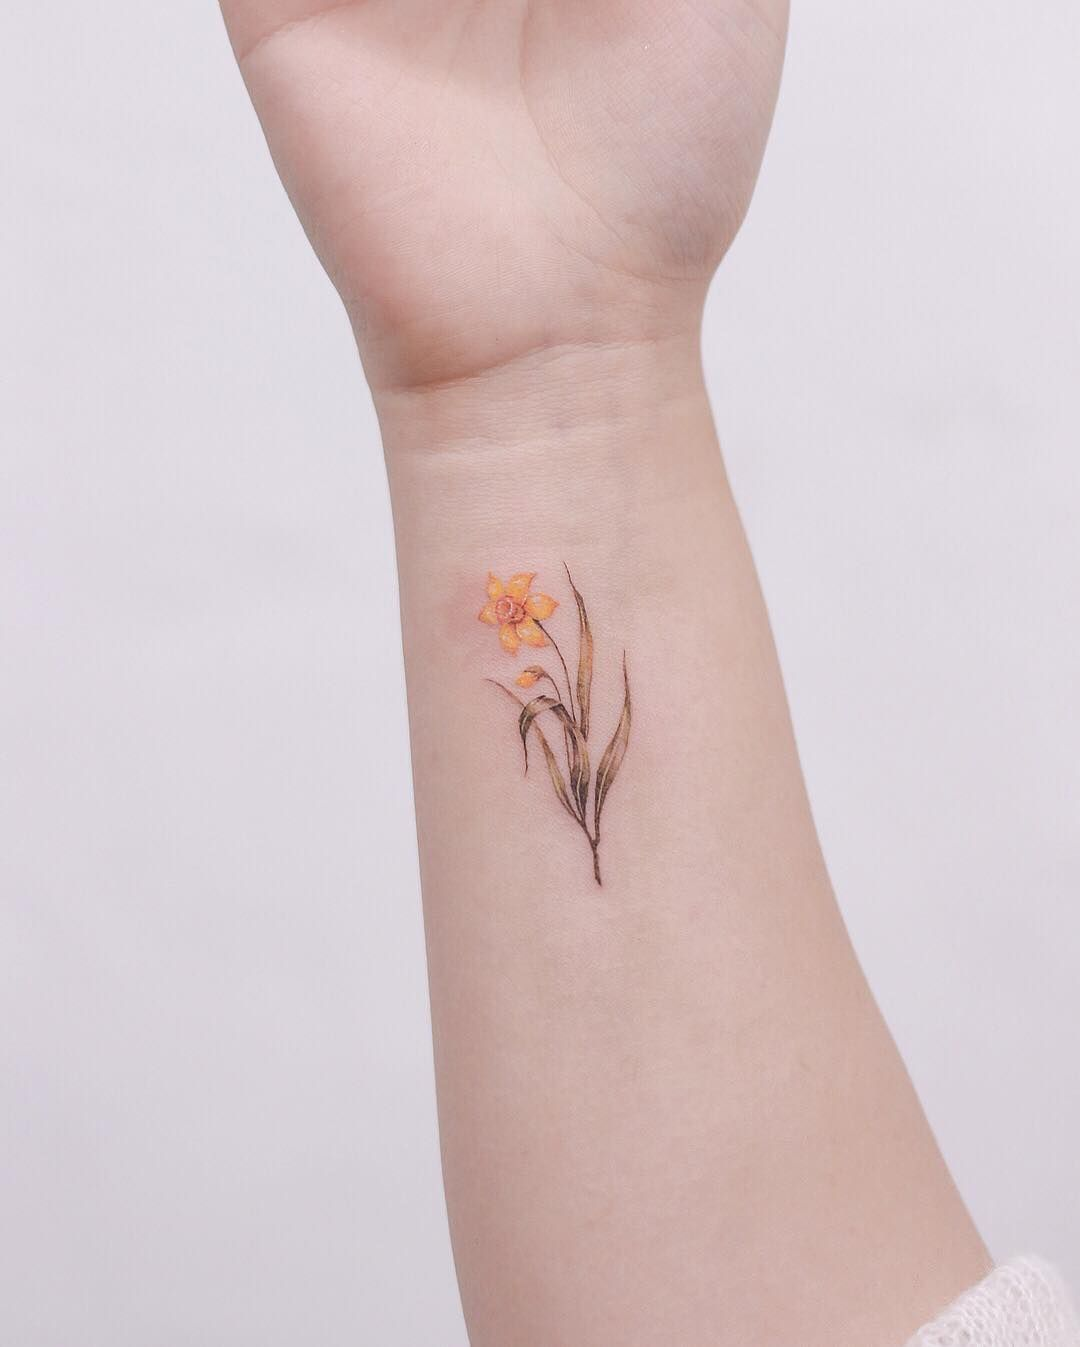 60 Girly Tattoos That Are The Epitome of Perfection Page